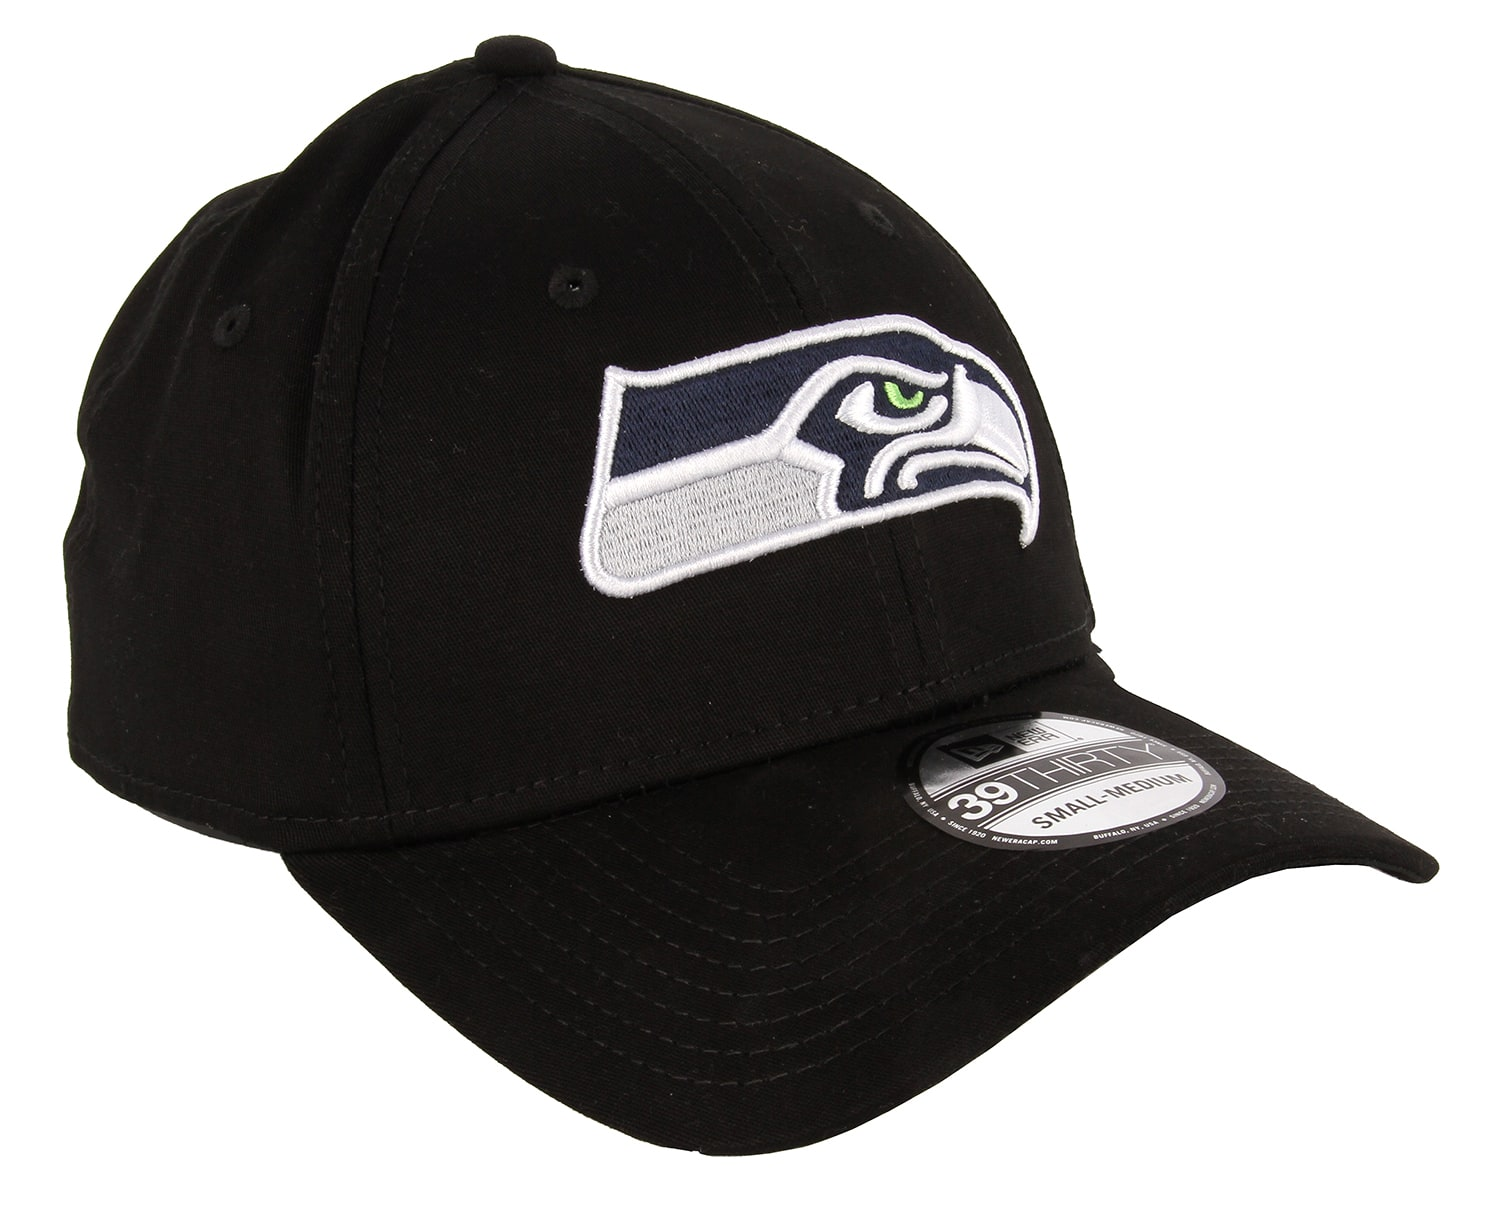 Details about New Era Seattle Seahawks NFL Black Base 39THIRTY Cap - black 0eea1787ae3